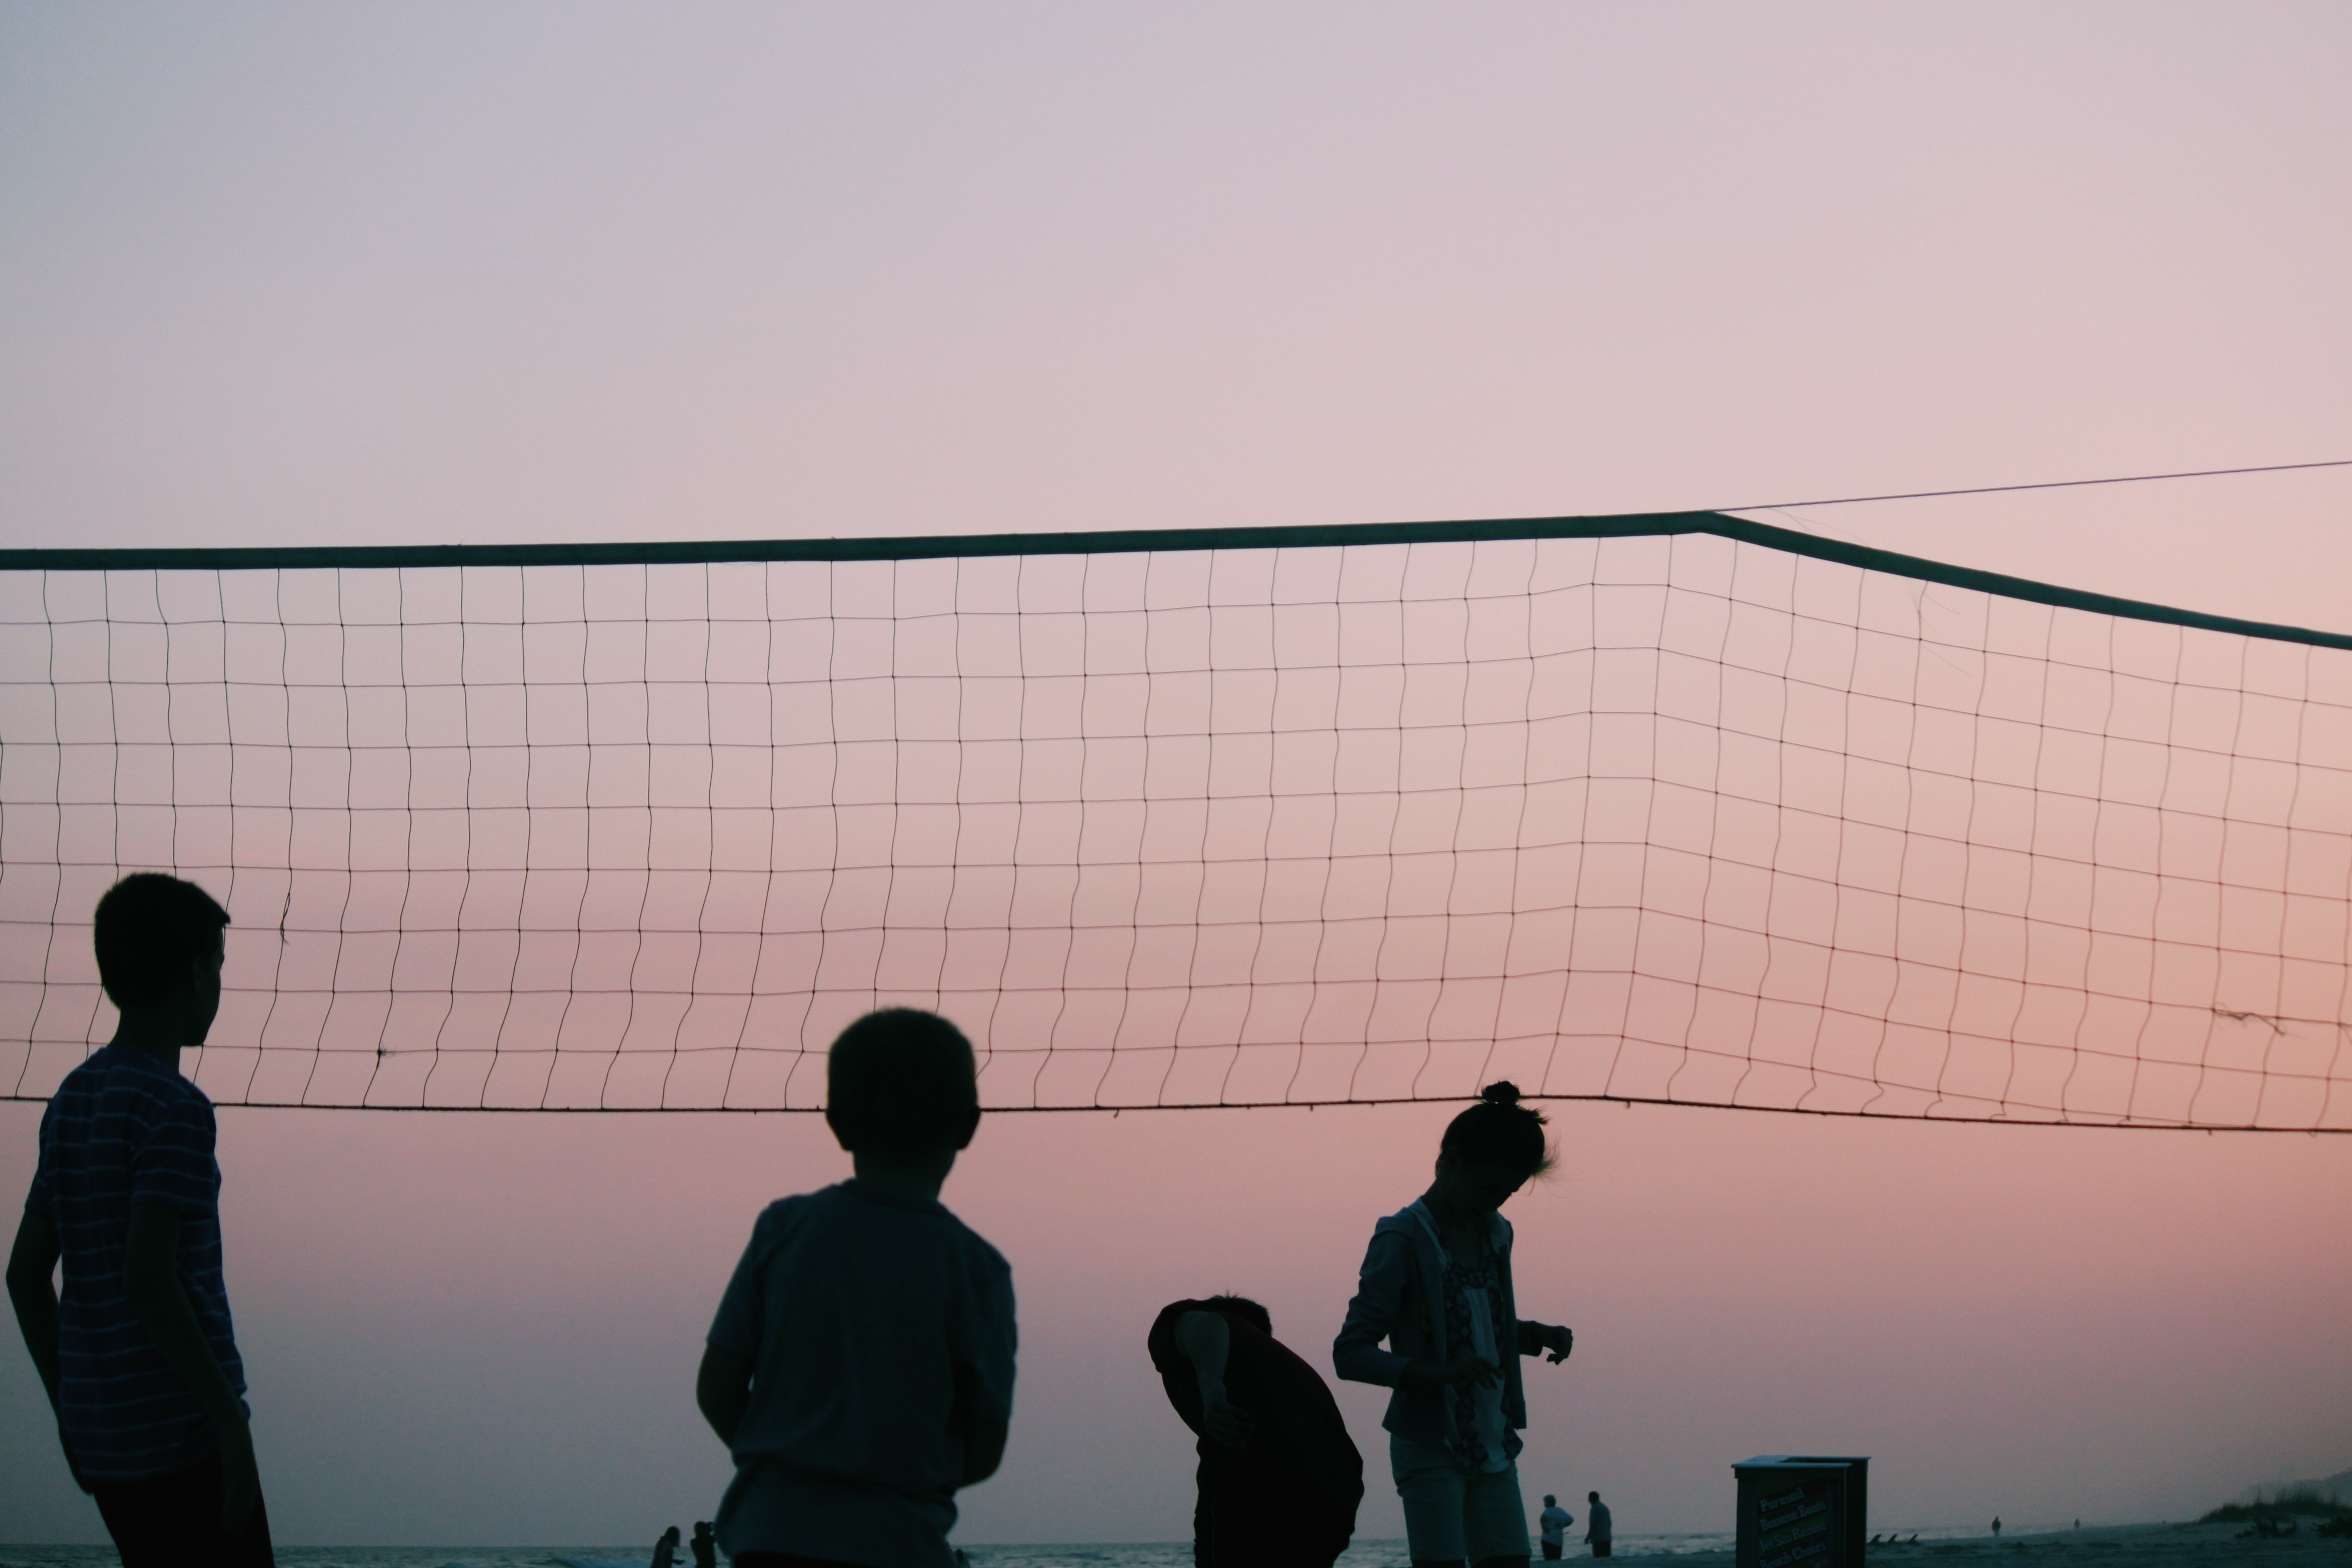 silhouette of four people playing volleyball during nighttime